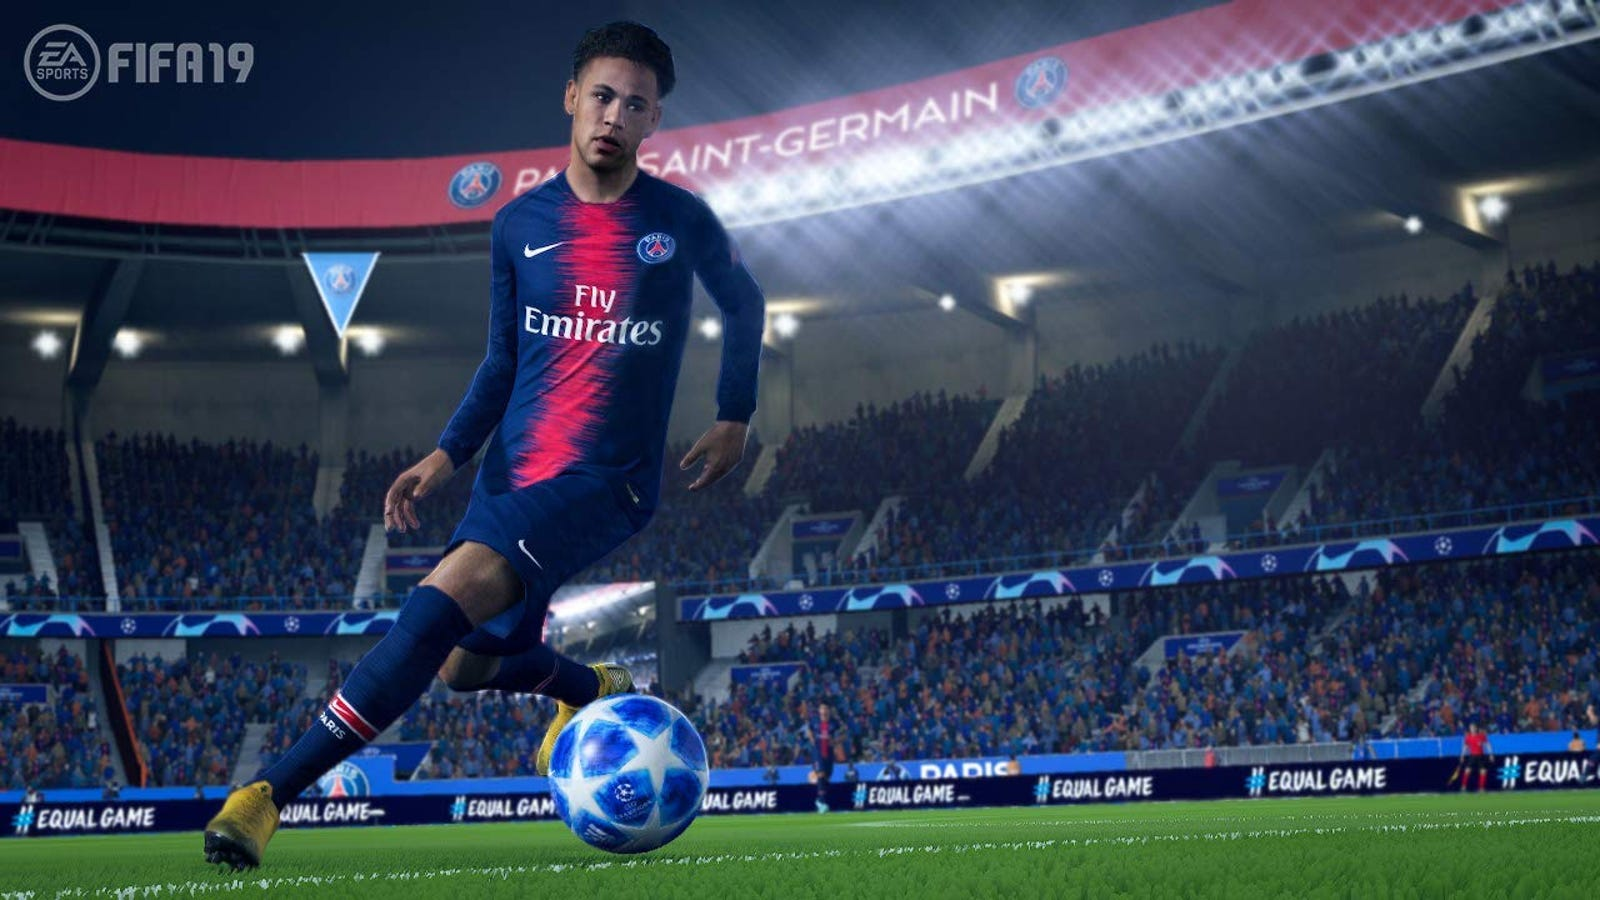 Play A Game Of FIFA 19 Anywhere With This $40 Switch Download